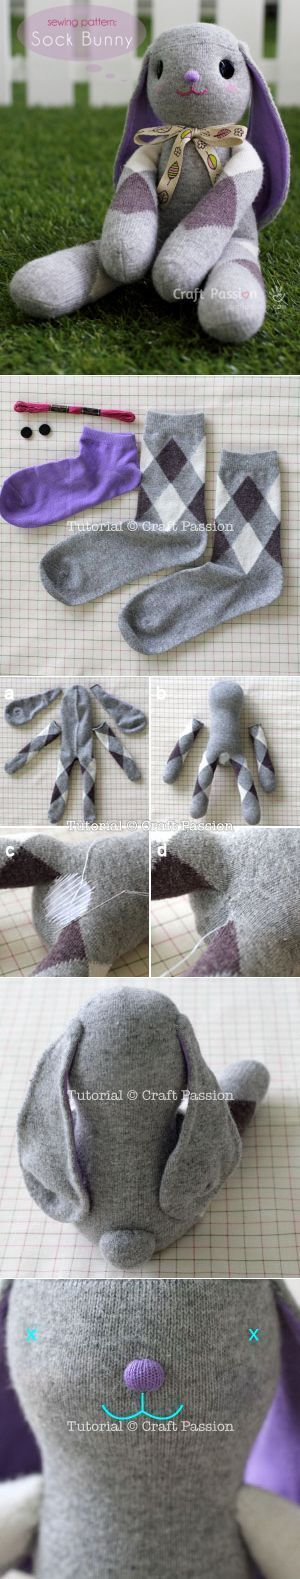 Sock Bunny Lop-Eared -Free Sew Pattern                                                                                                                                                                                 More